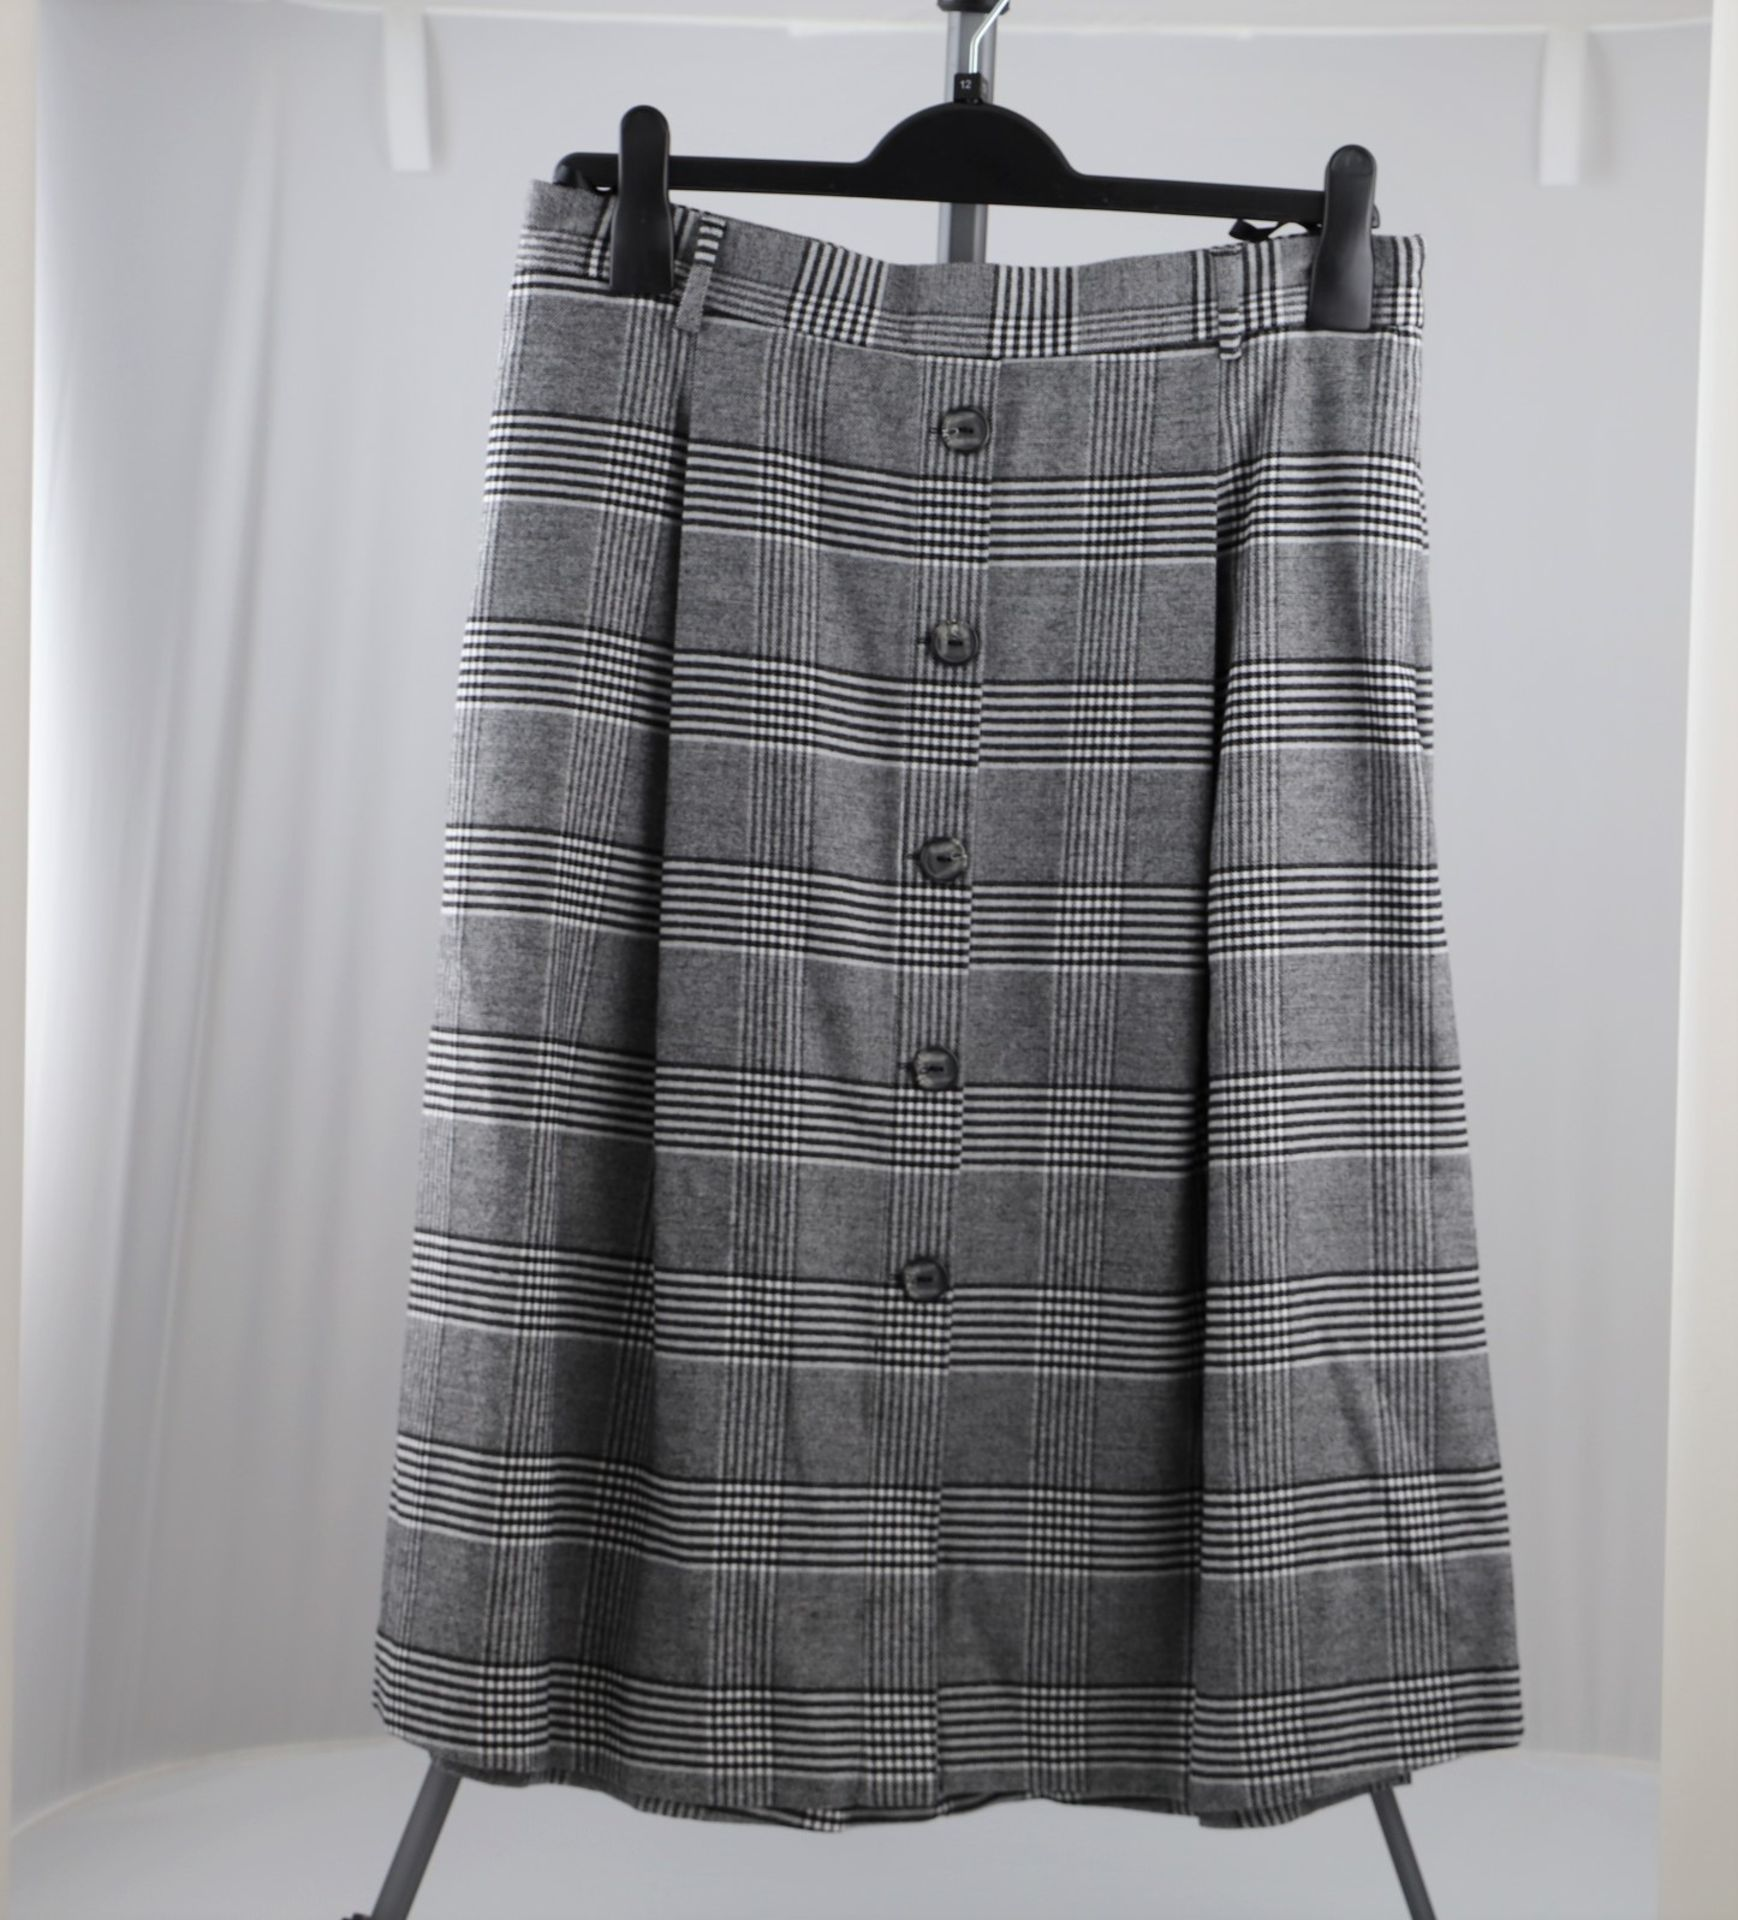 1 x mixed pallet = 250 items of Grade A M&S Womenswear. Approx Total RRP £6491.50 - Image 6 of 8